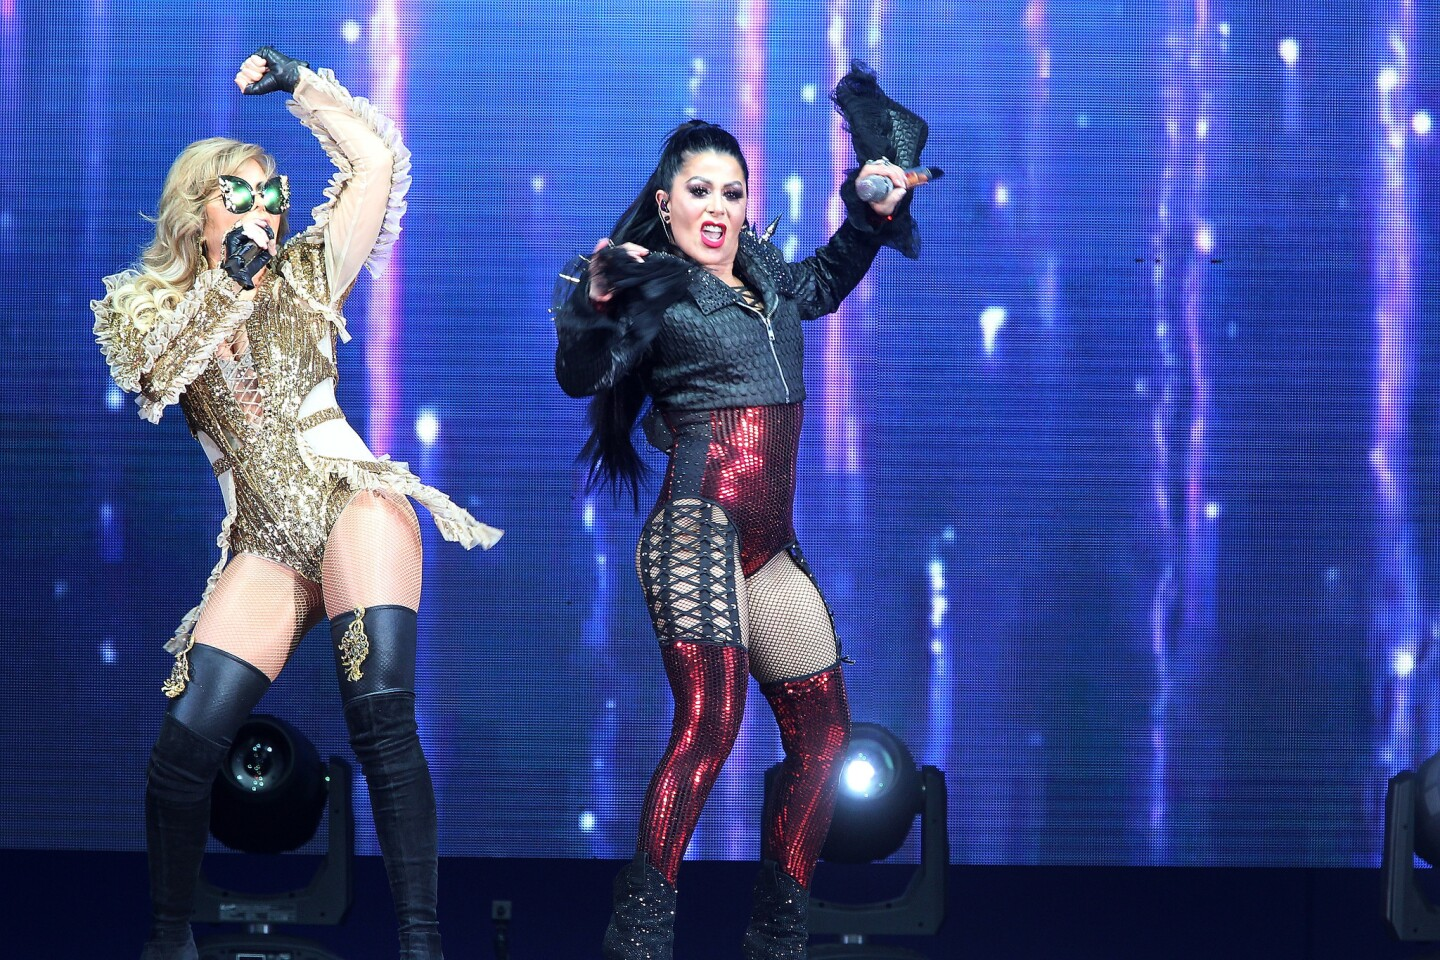 """Gloria Trevi, Alejandra Guzman perform onstage during the """"Versus Tour"""" at Hollywood Bowl on April 14, 2018 in Hollywood, CA. (Photo by © Art. Garcia/DDPixels.com)"""